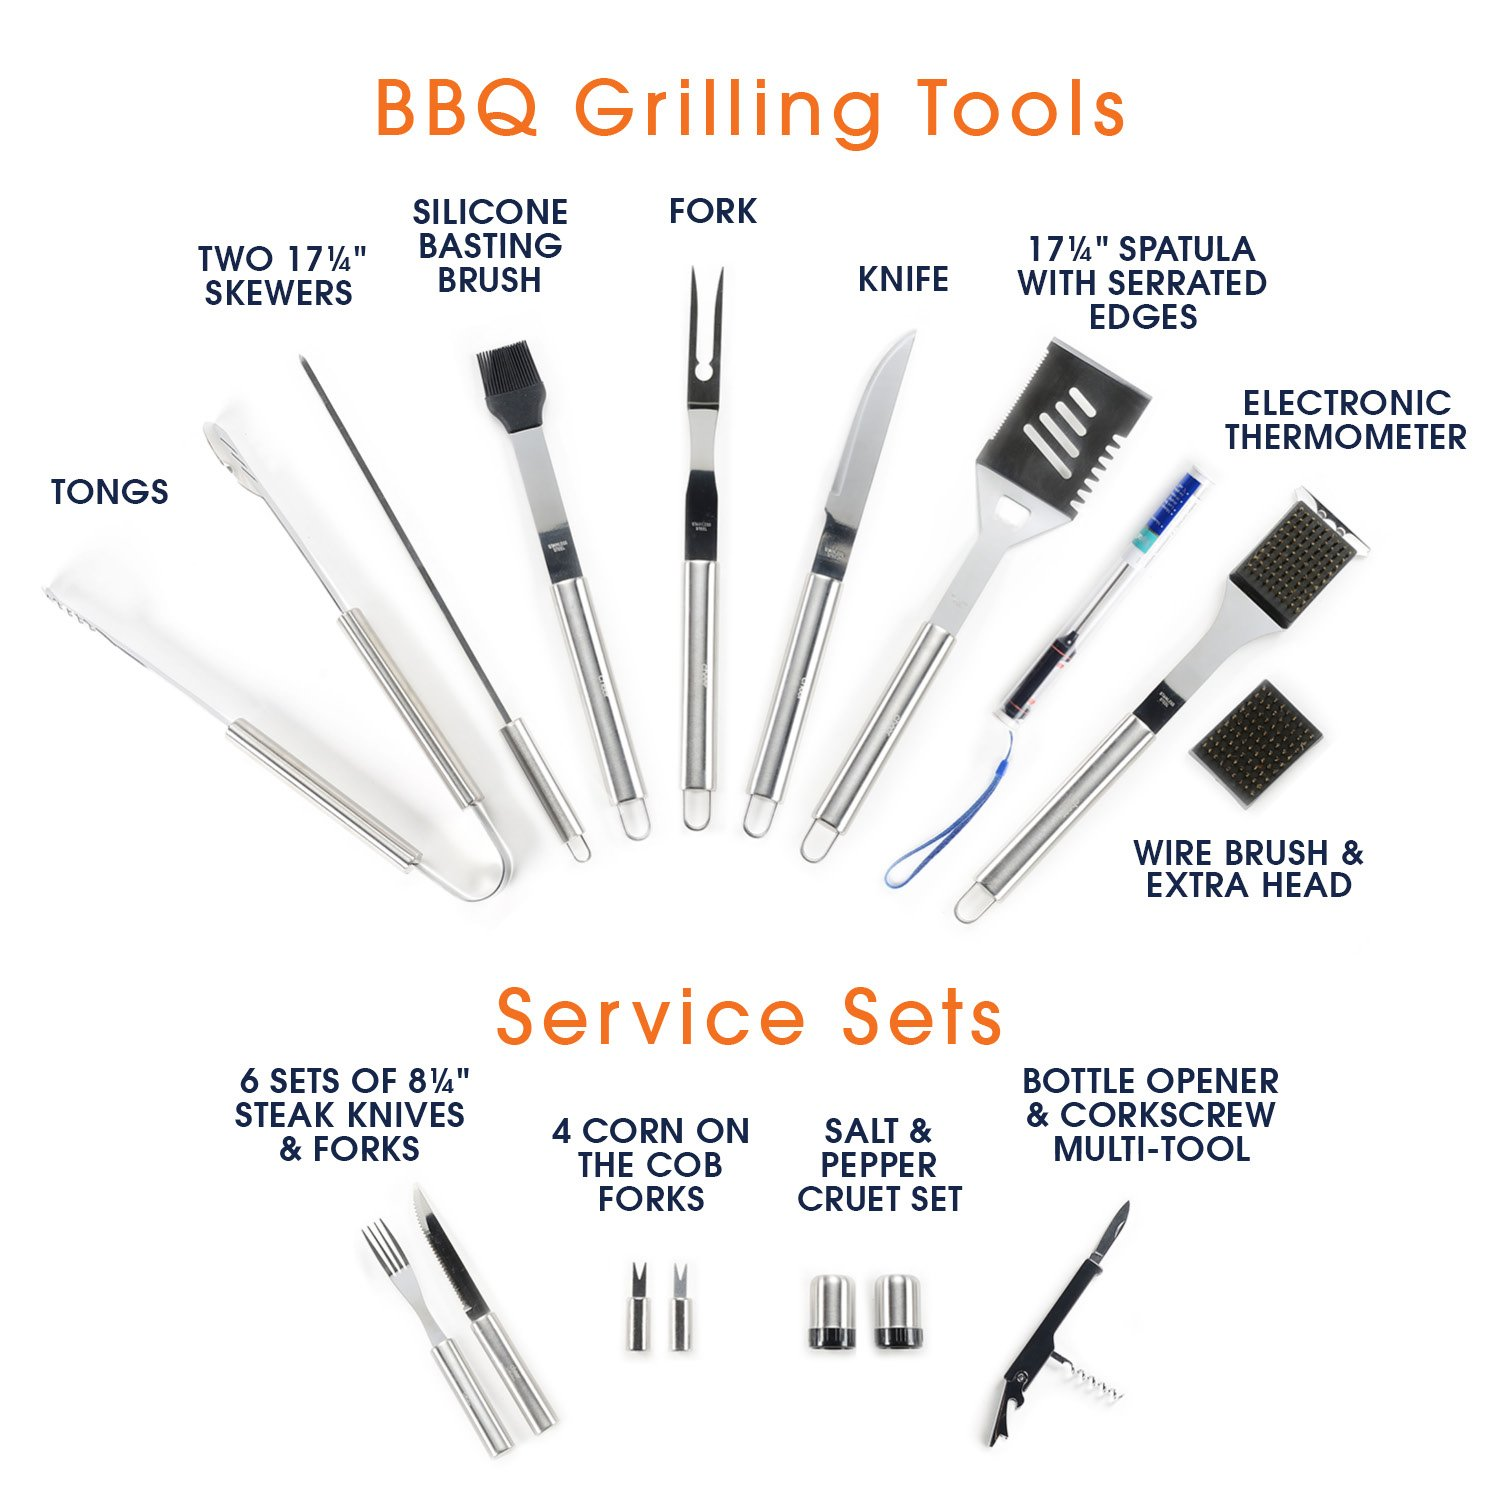 Includes 4-in-1 Spatula Turner 30 Piece BBQ Utensil Set Professional Grade Stainless Steel Barbecue Grill Tool Set with Aluminum Storage Case Tongs and Many Other BBQ Grilling Accessories Cheer Collection